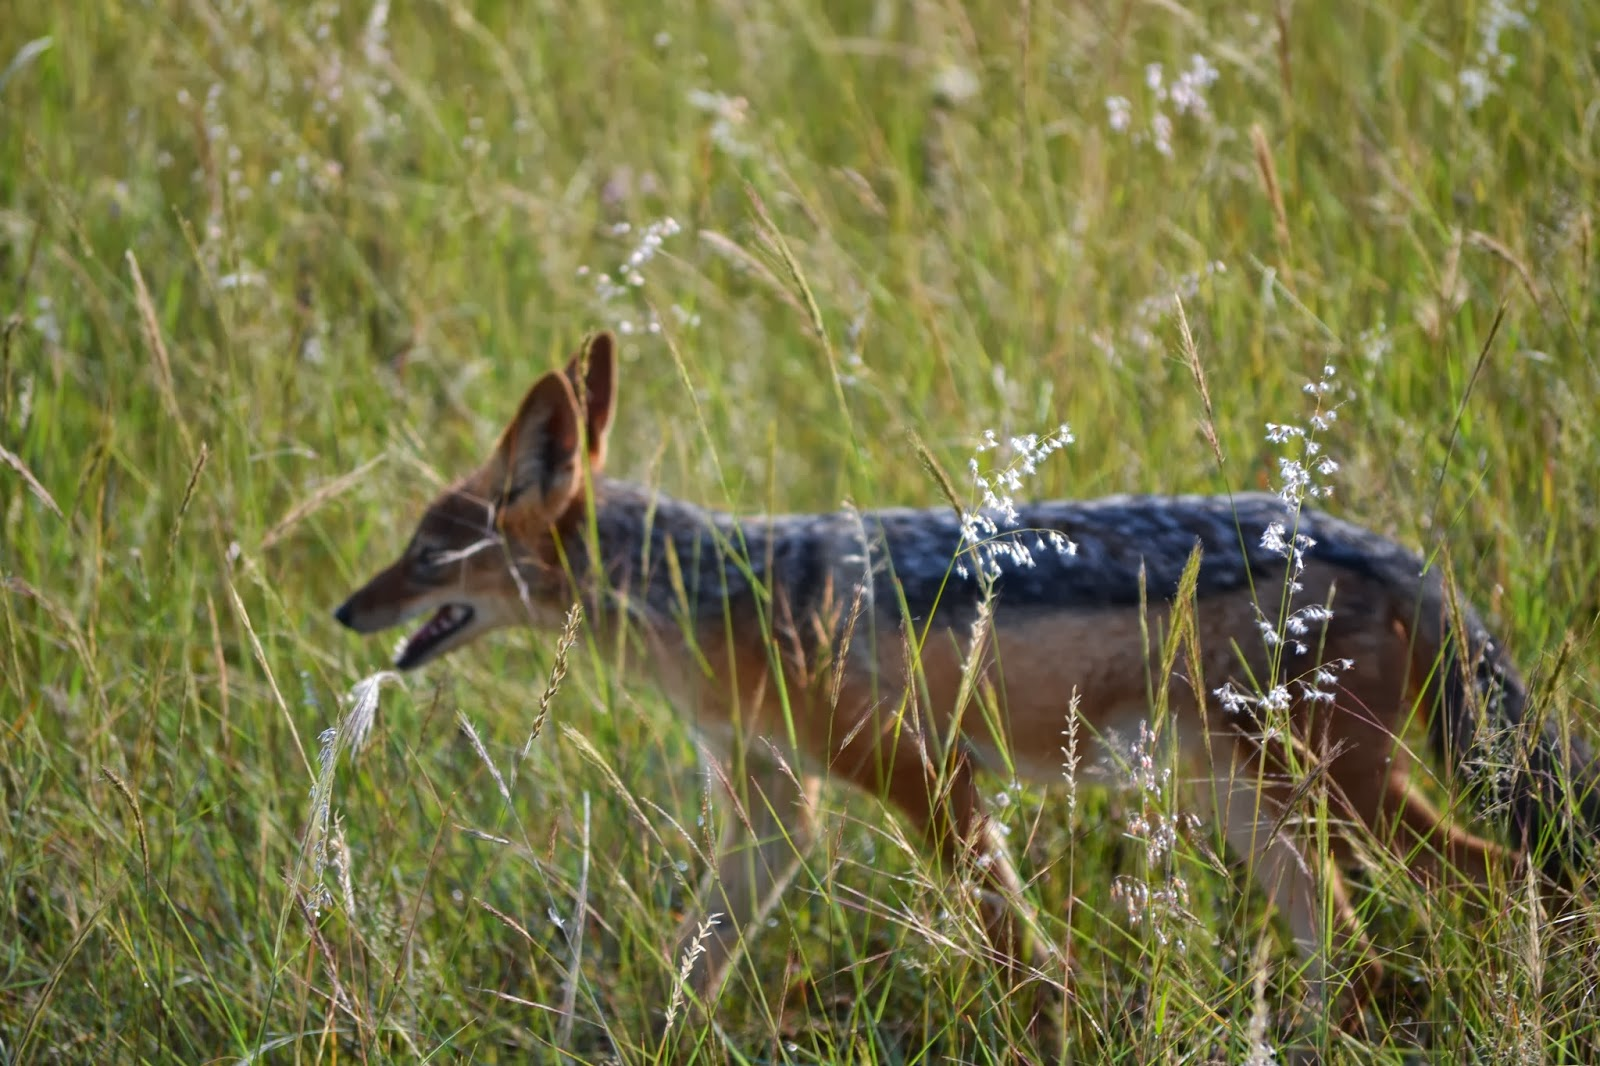 Jackal walking through the grass